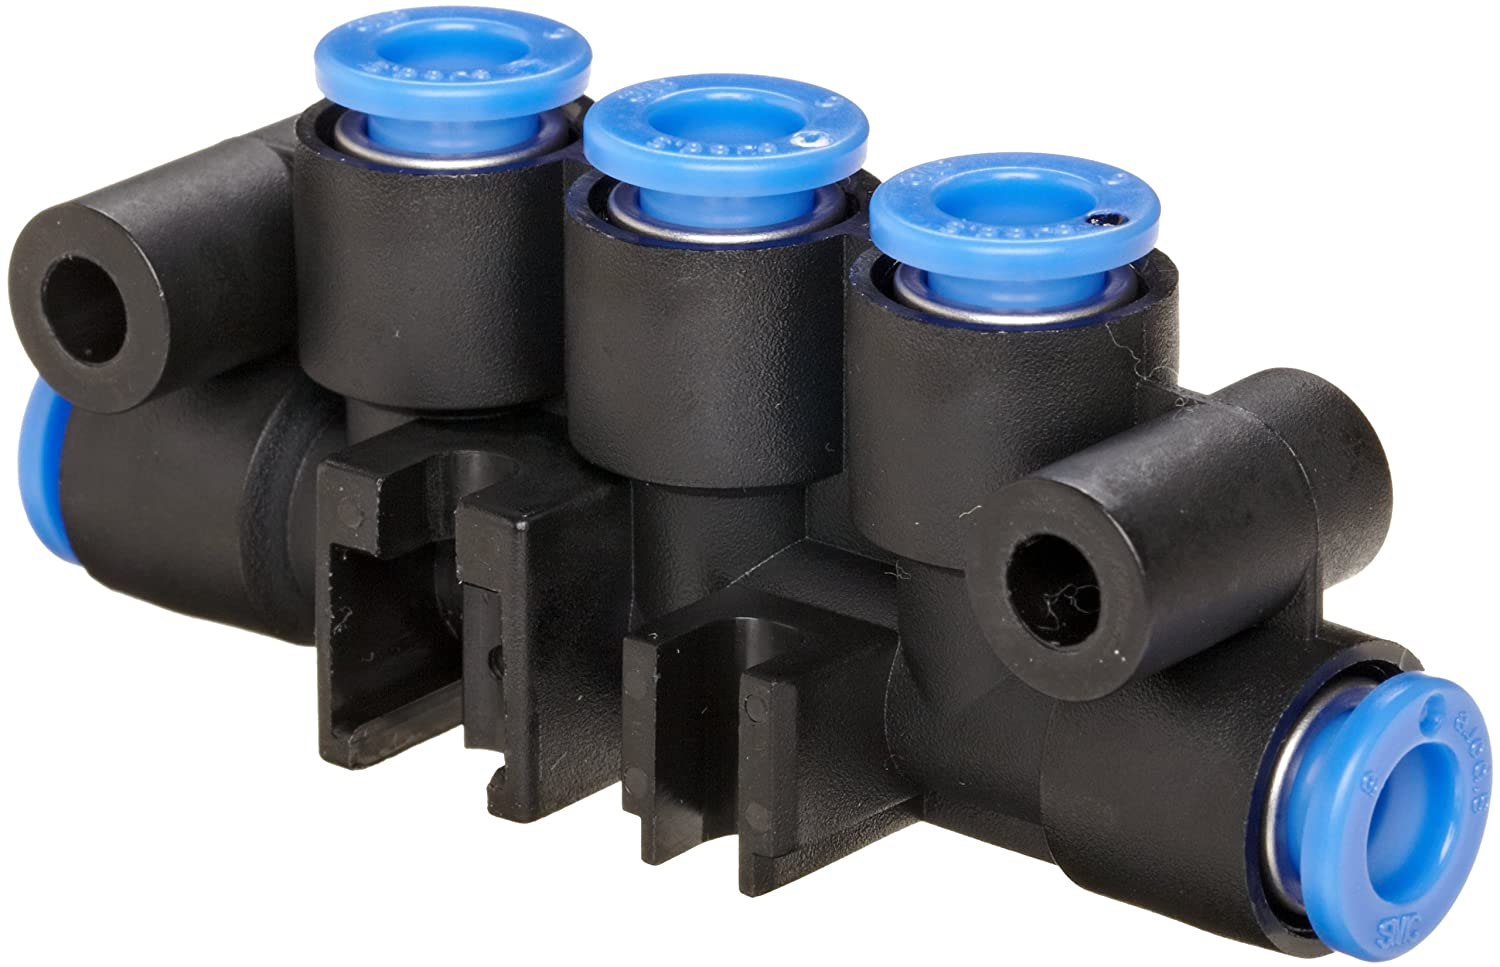 Black Pack of 5 SMC KM16-06-06-3 PBT Push-to-Connect Tubing Manifold 2 Inlets-6 mm 3 Outlets-6 mm Tube OD